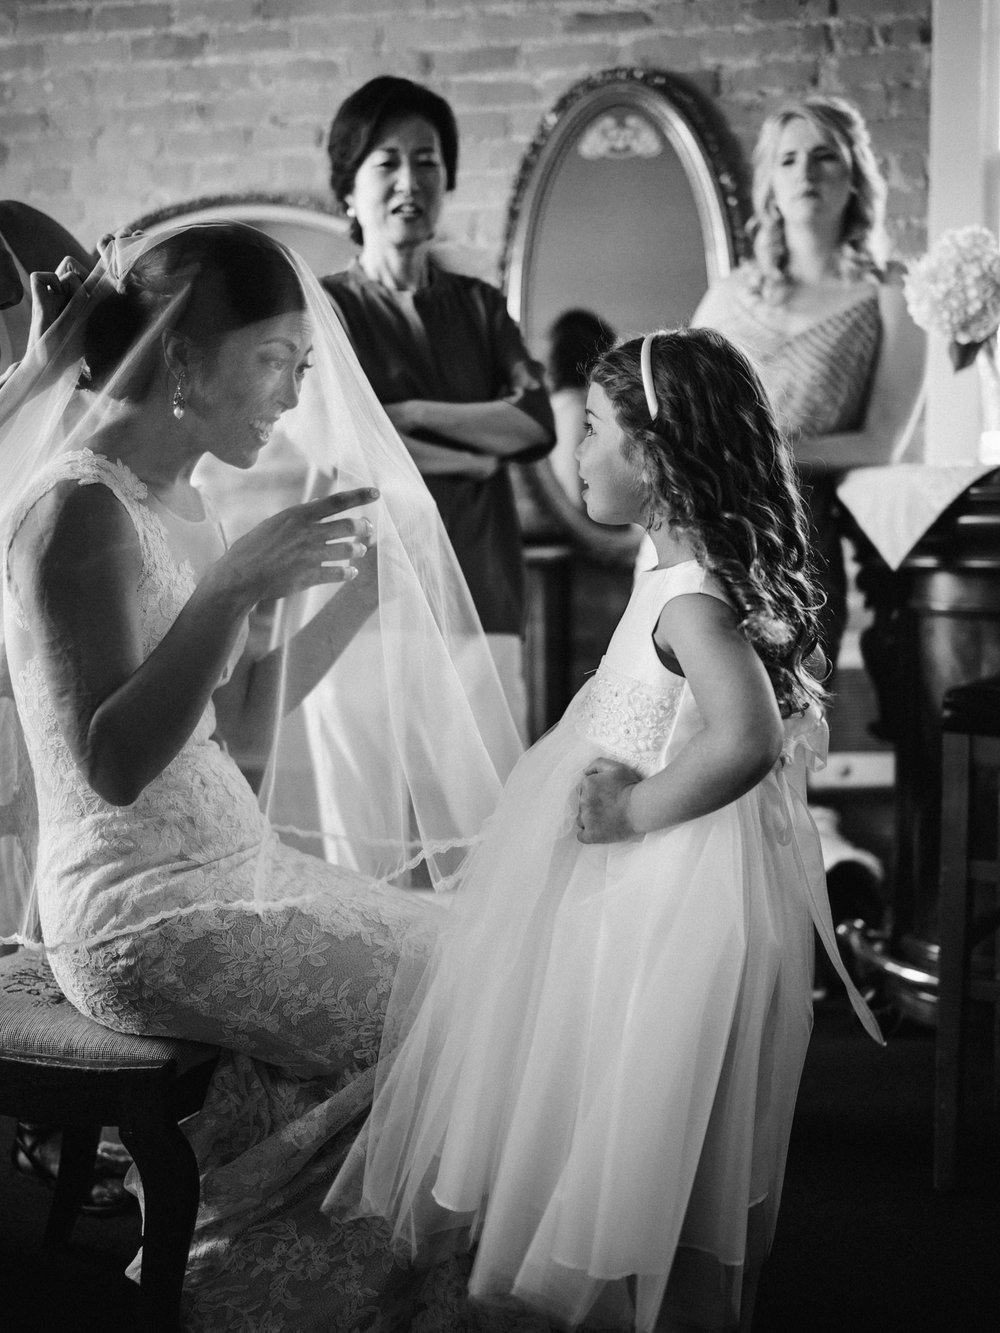 057-bride-and-flower-girl-moment-by-best-seattle-documentary-wedding-photographer-ryan-flynn.jpg